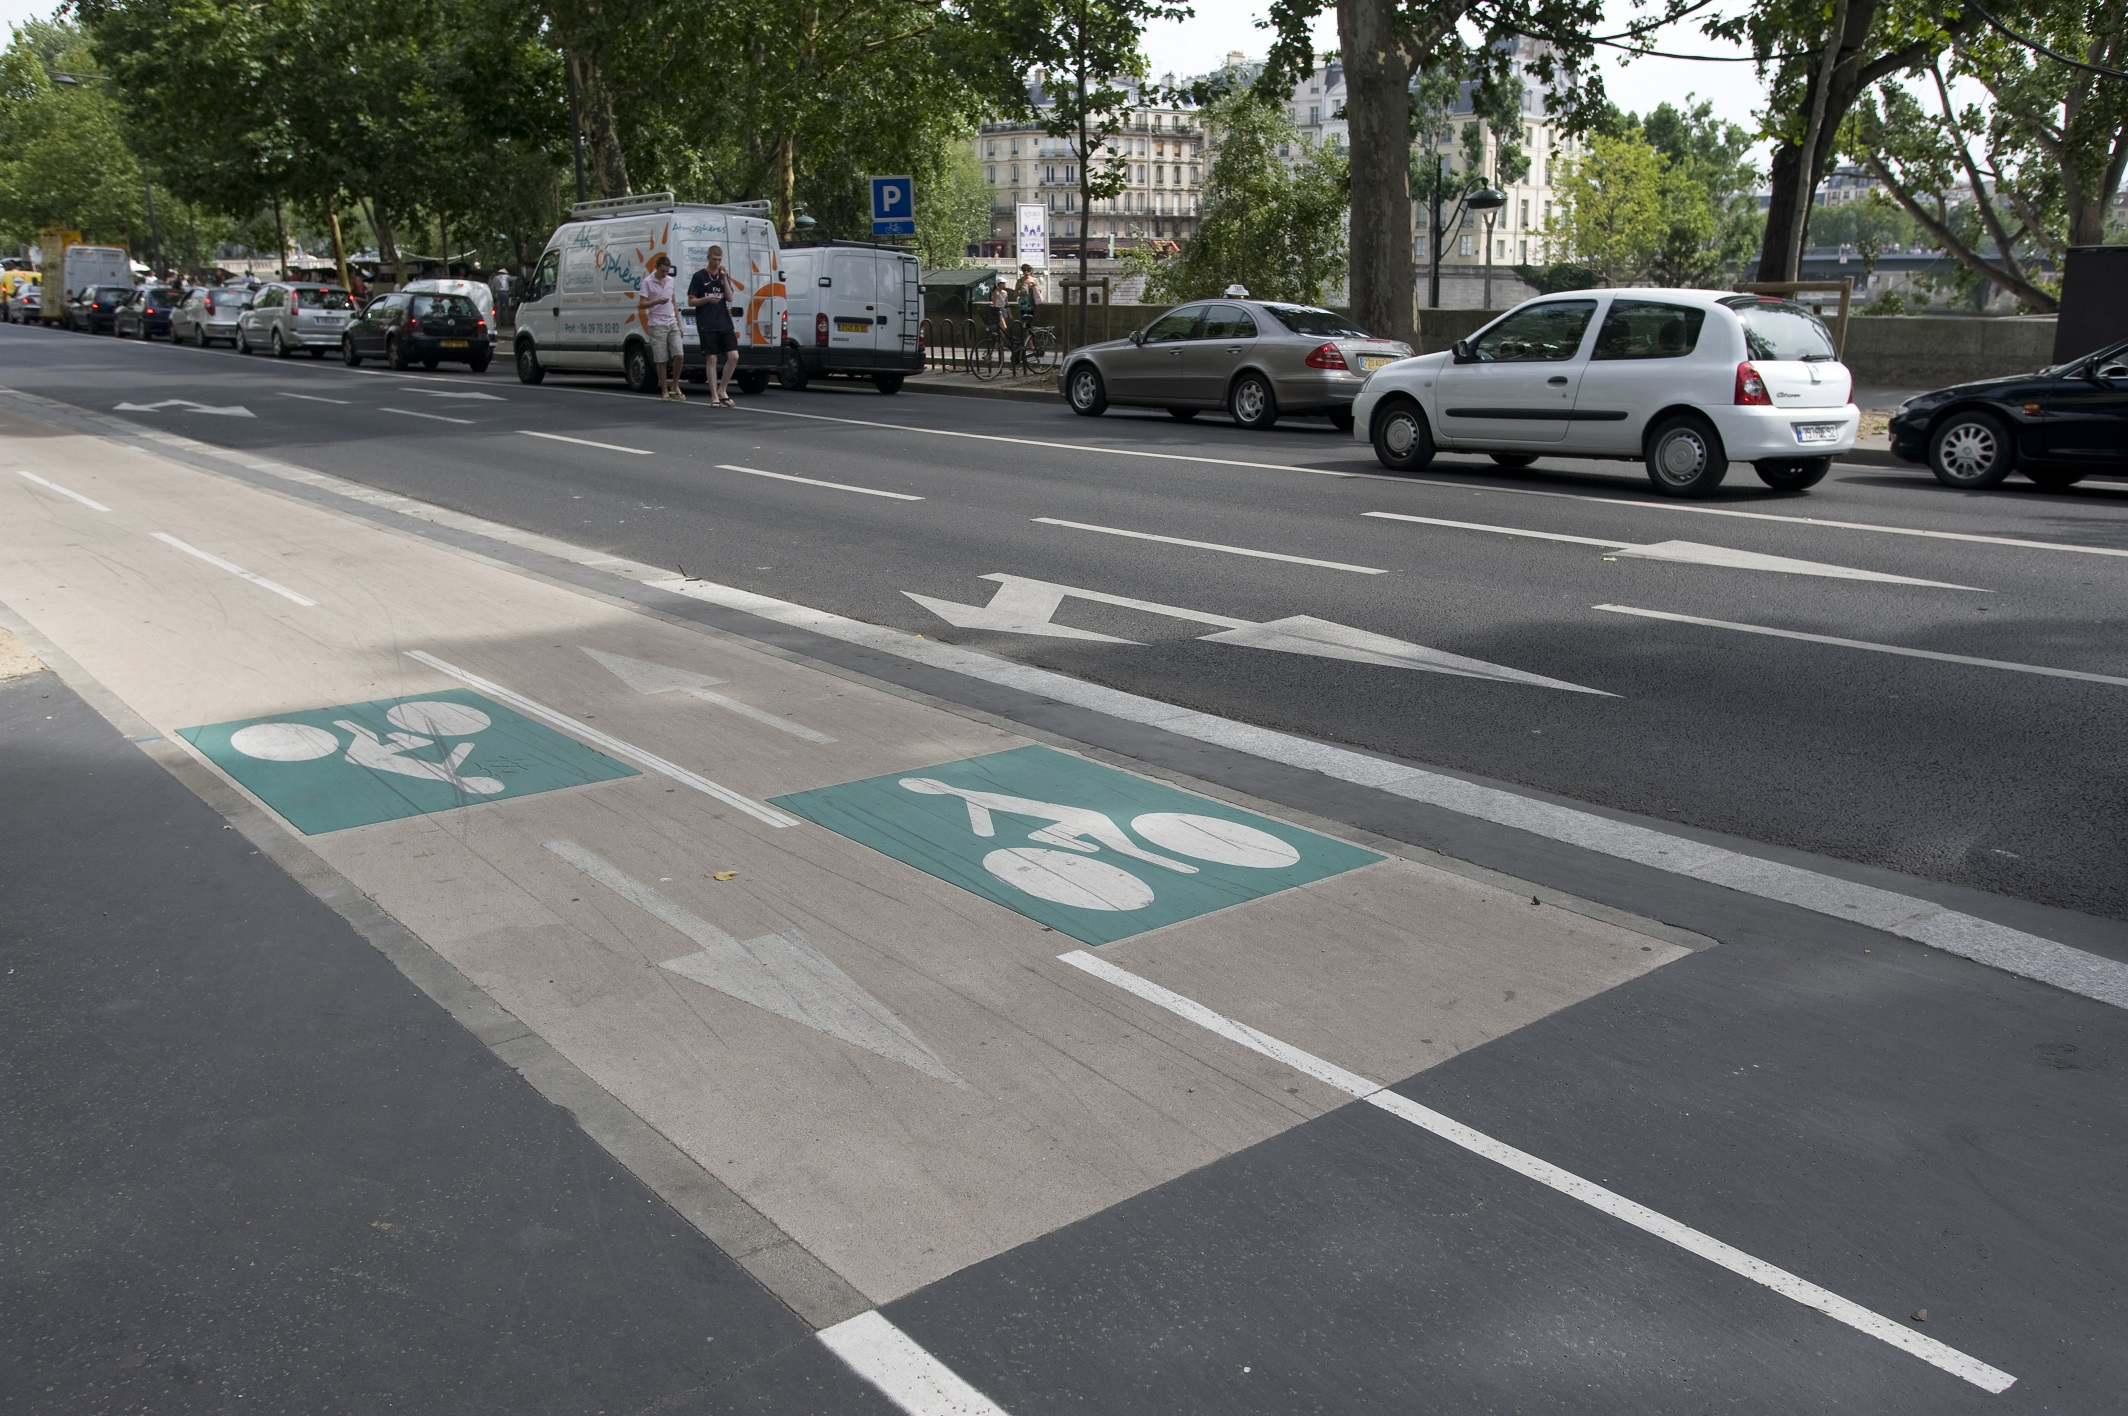 https://lesvoitures.fr/wp-content/uploads/2017/04/Piste-cyclable-paris-anne-hidalgo.jpg